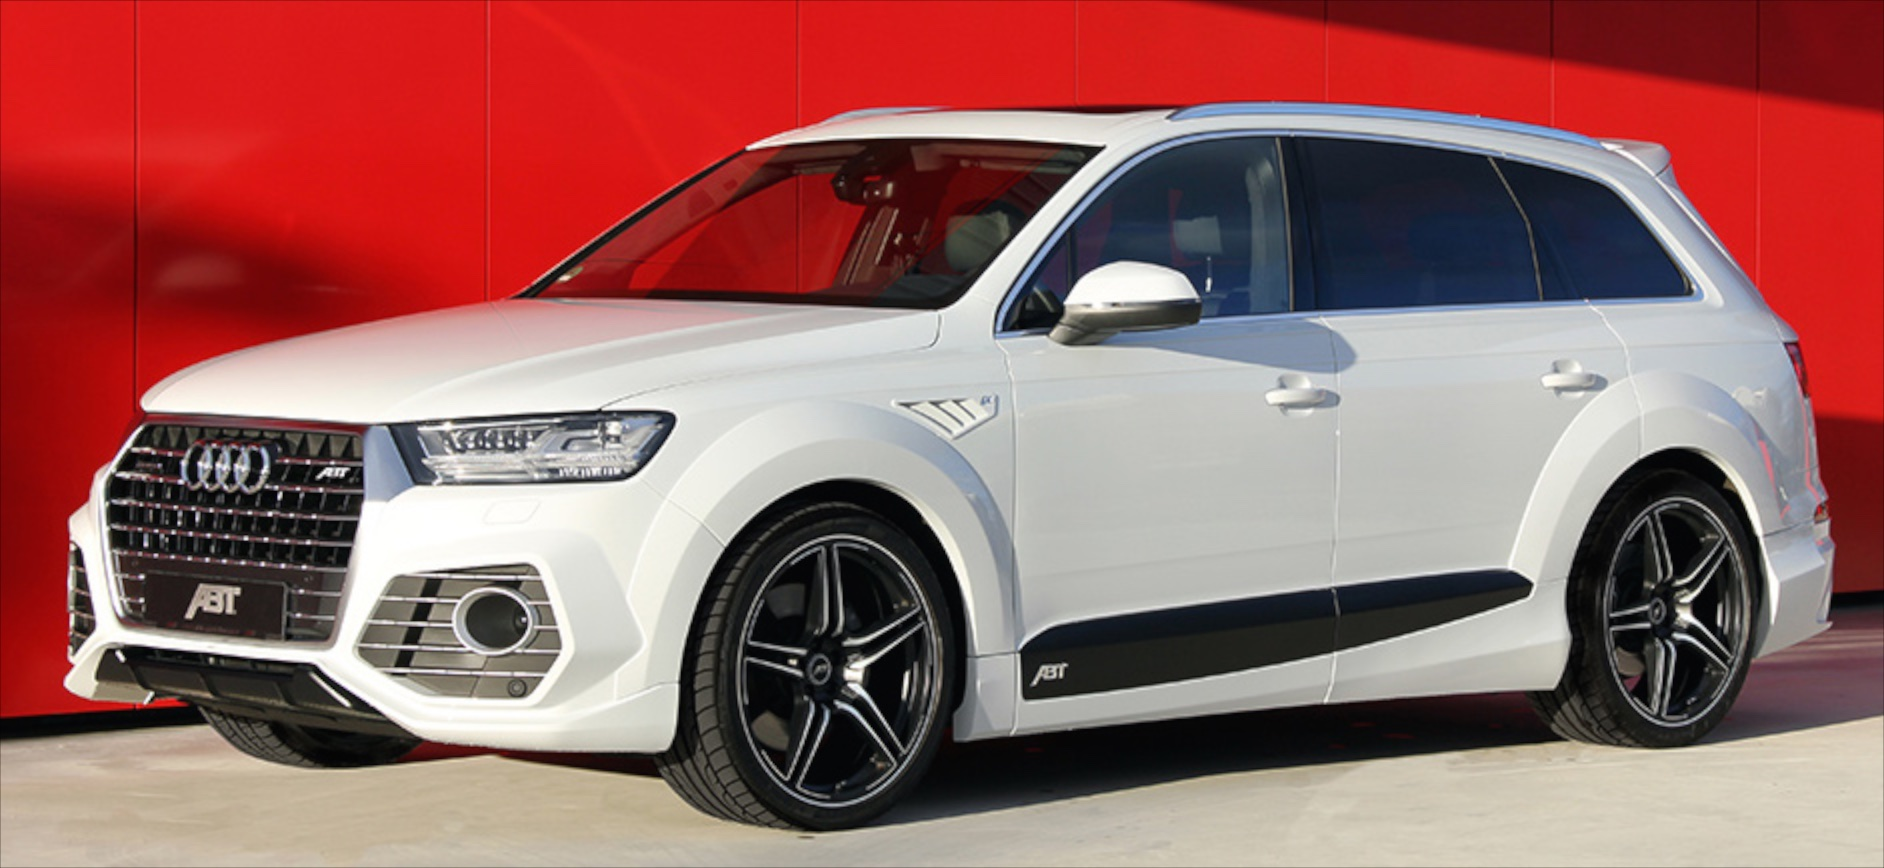 abt qs7 power and style upgrades for the audi q7. Black Bedroom Furniture Sets. Home Design Ideas